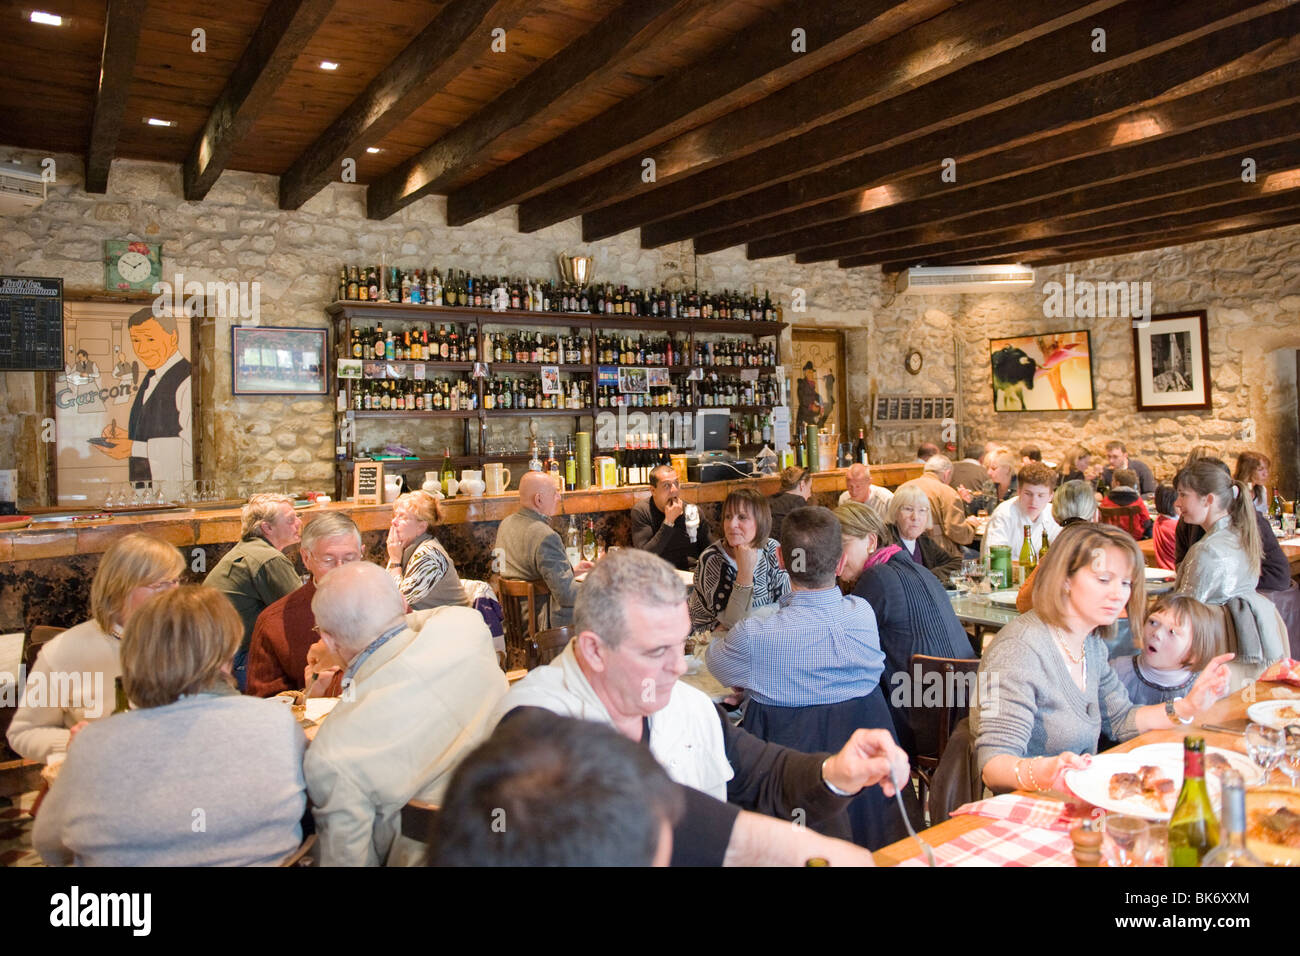 France Paradou Province Bistrot du Paradou guests diners eating restaurant of farmhouse setting wooden tables & - Stock Image